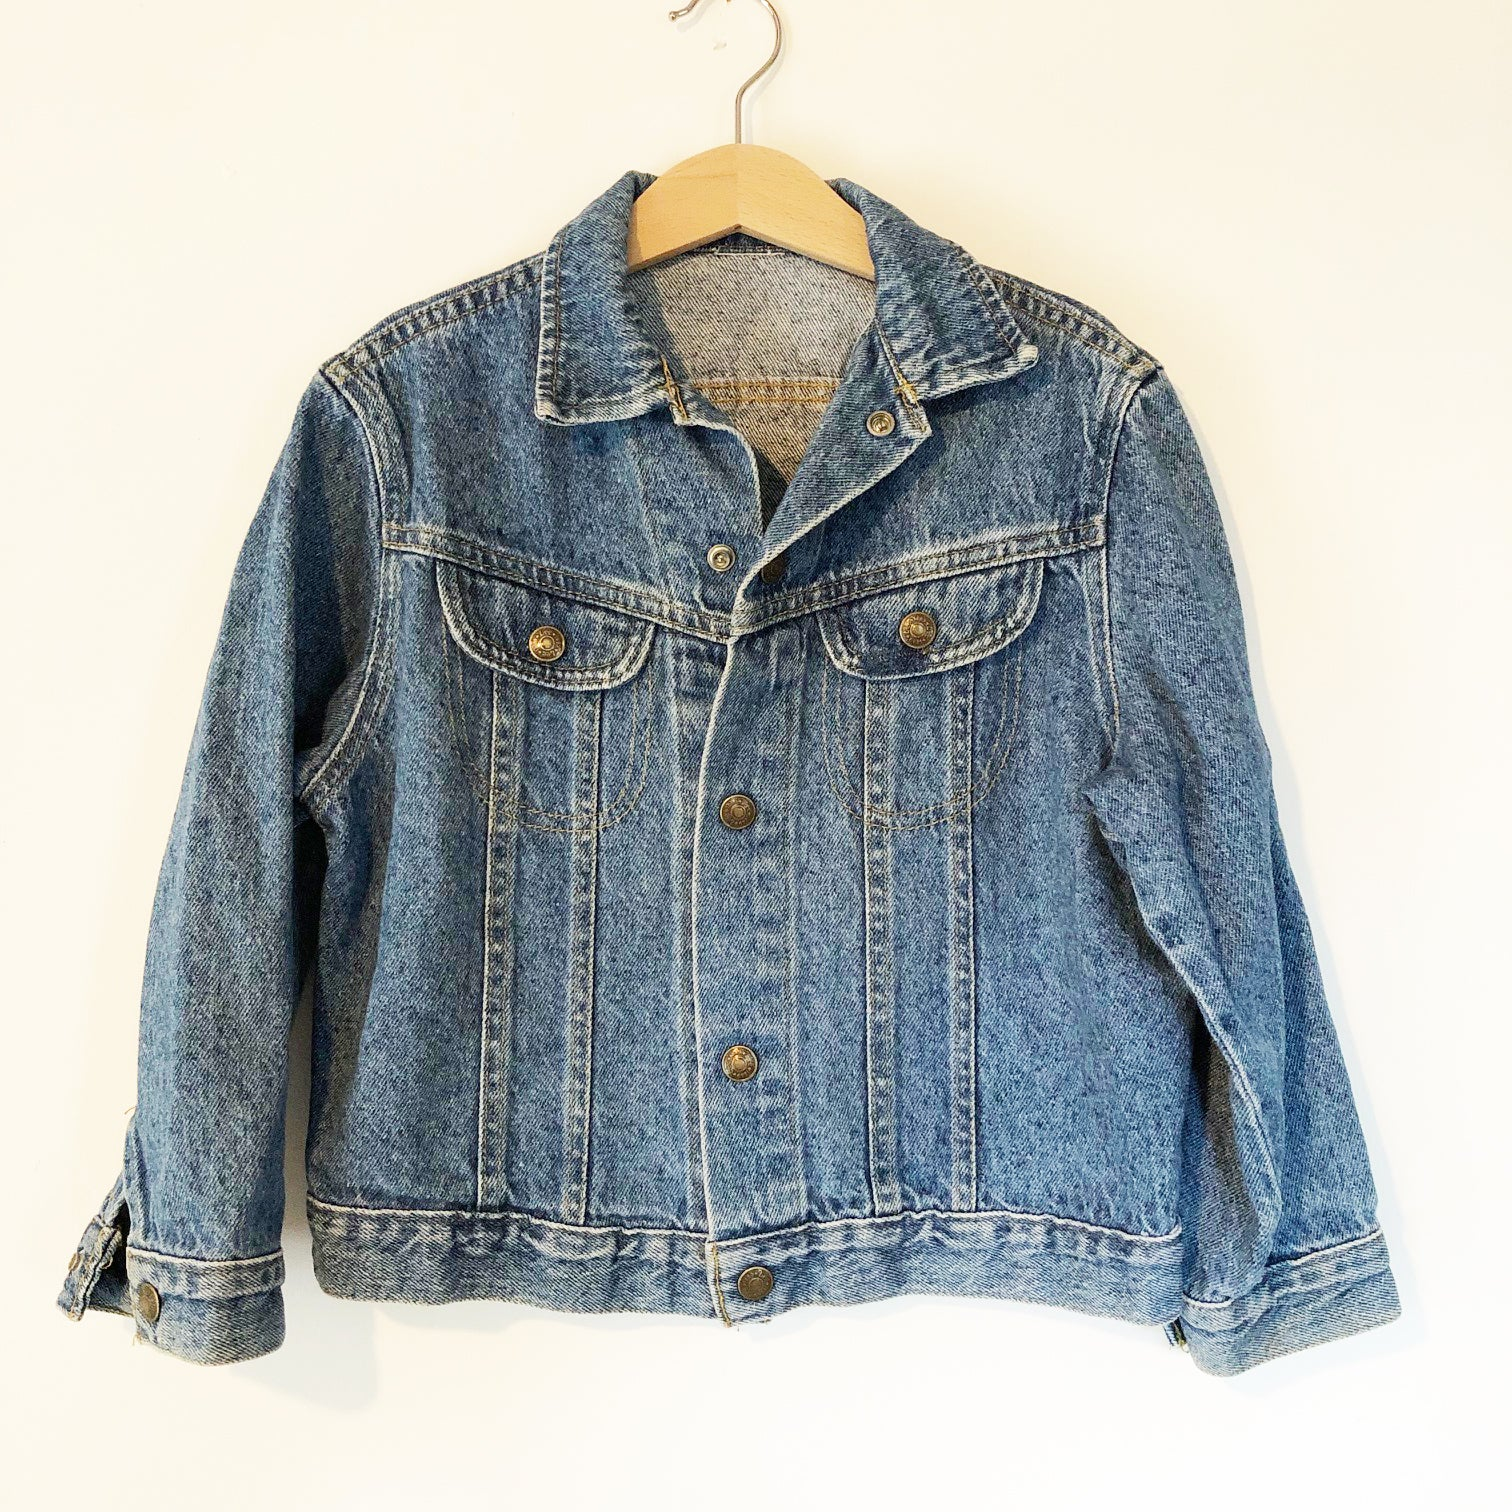 Vintage Lee jacket size 5-6